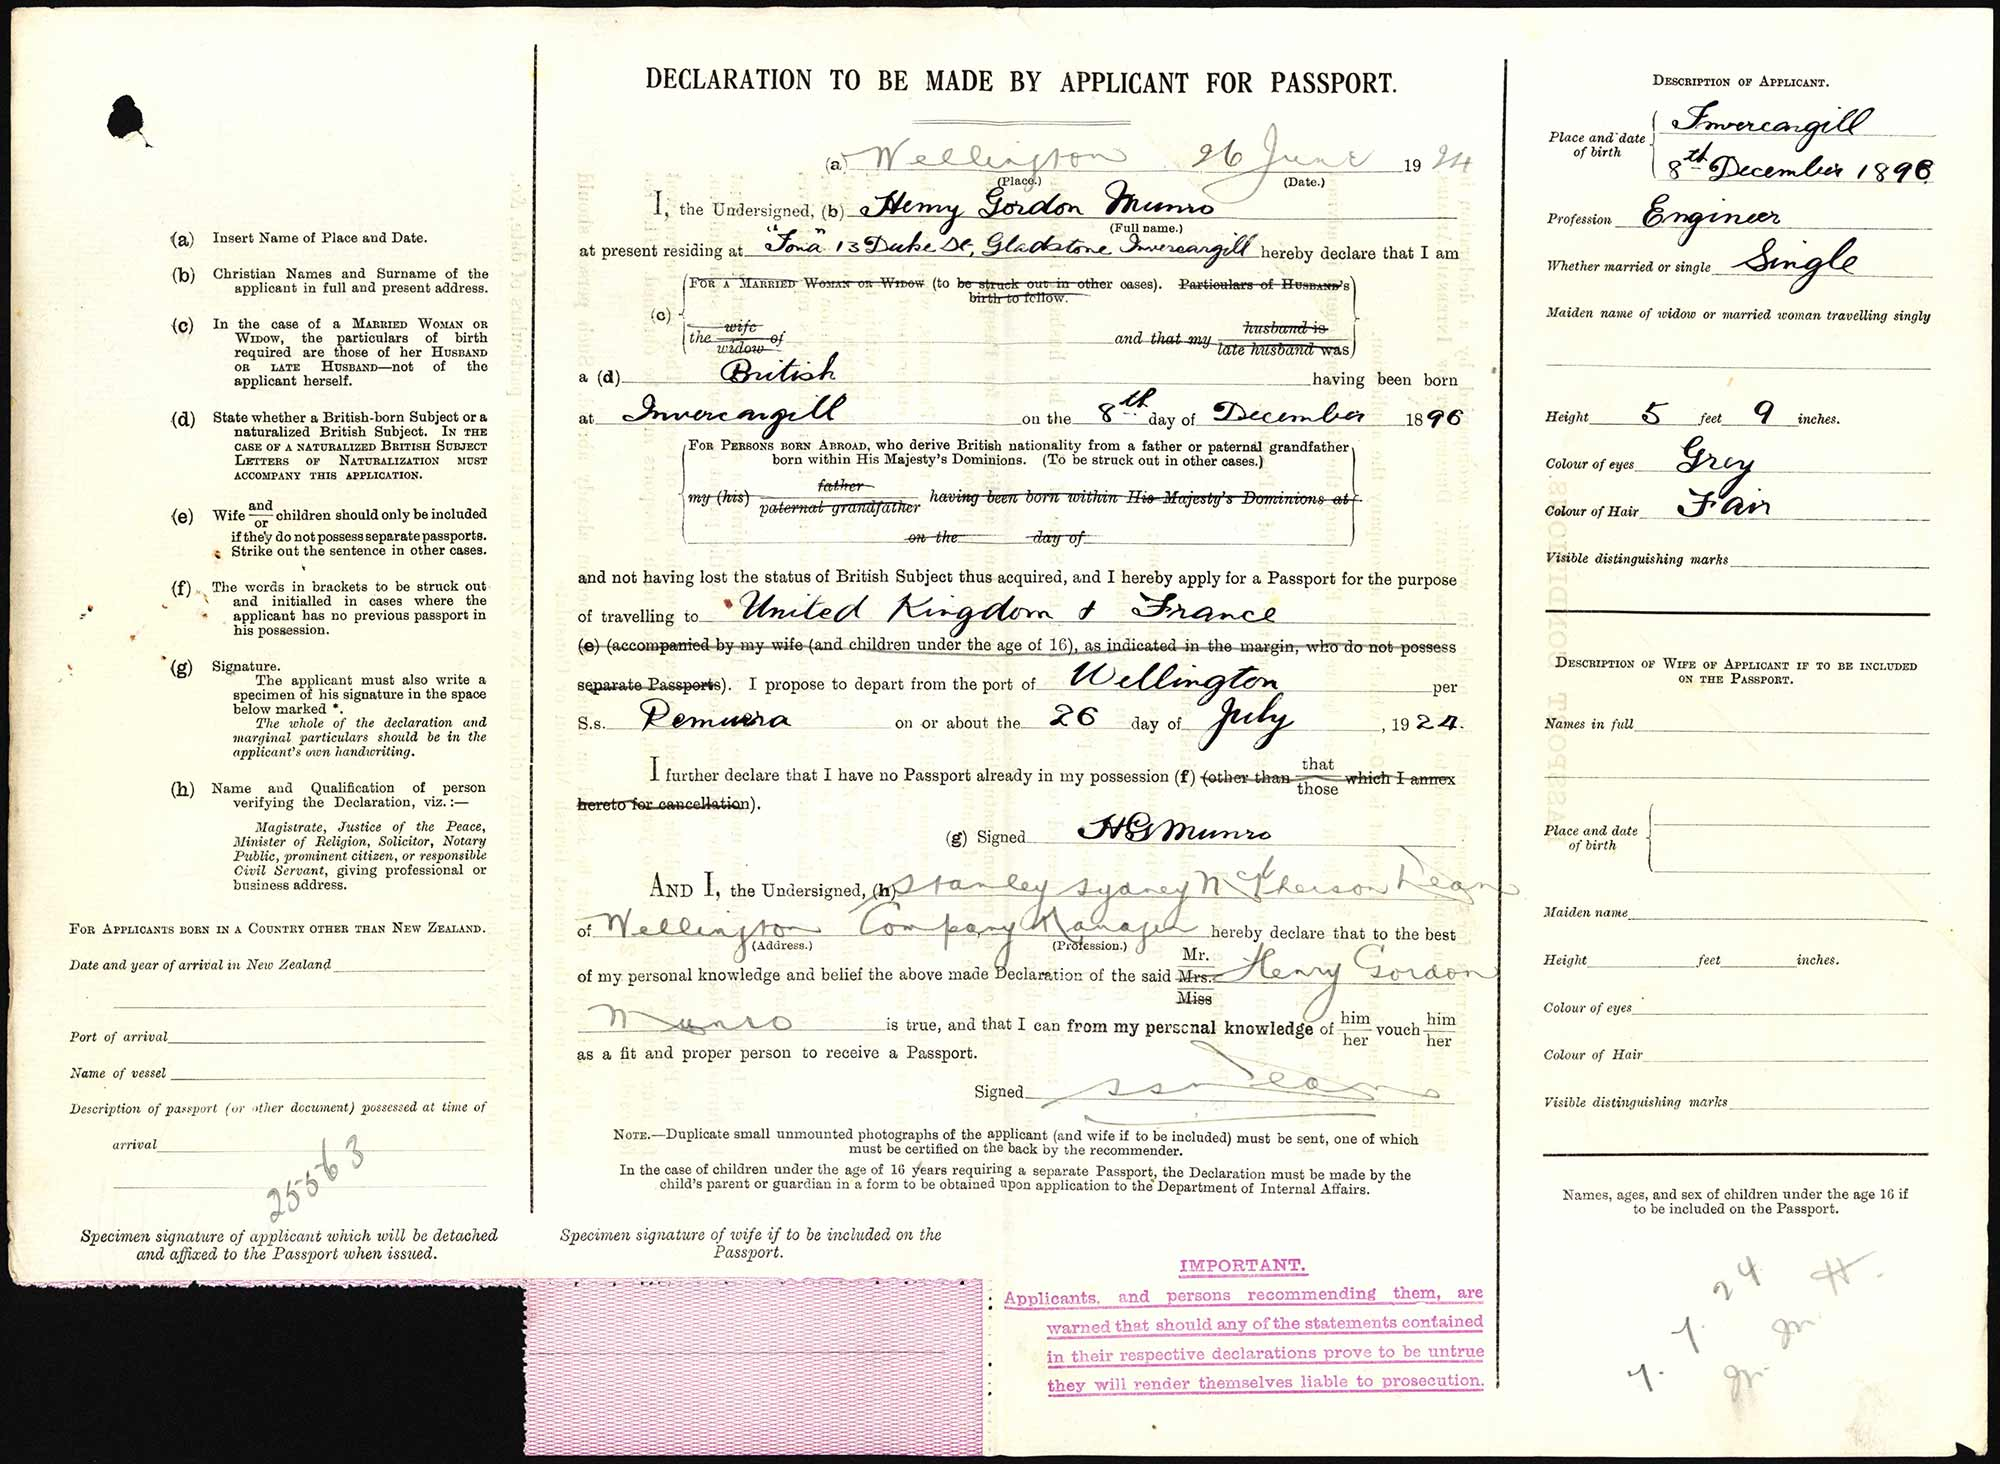 Henry Gordon Munro passport application